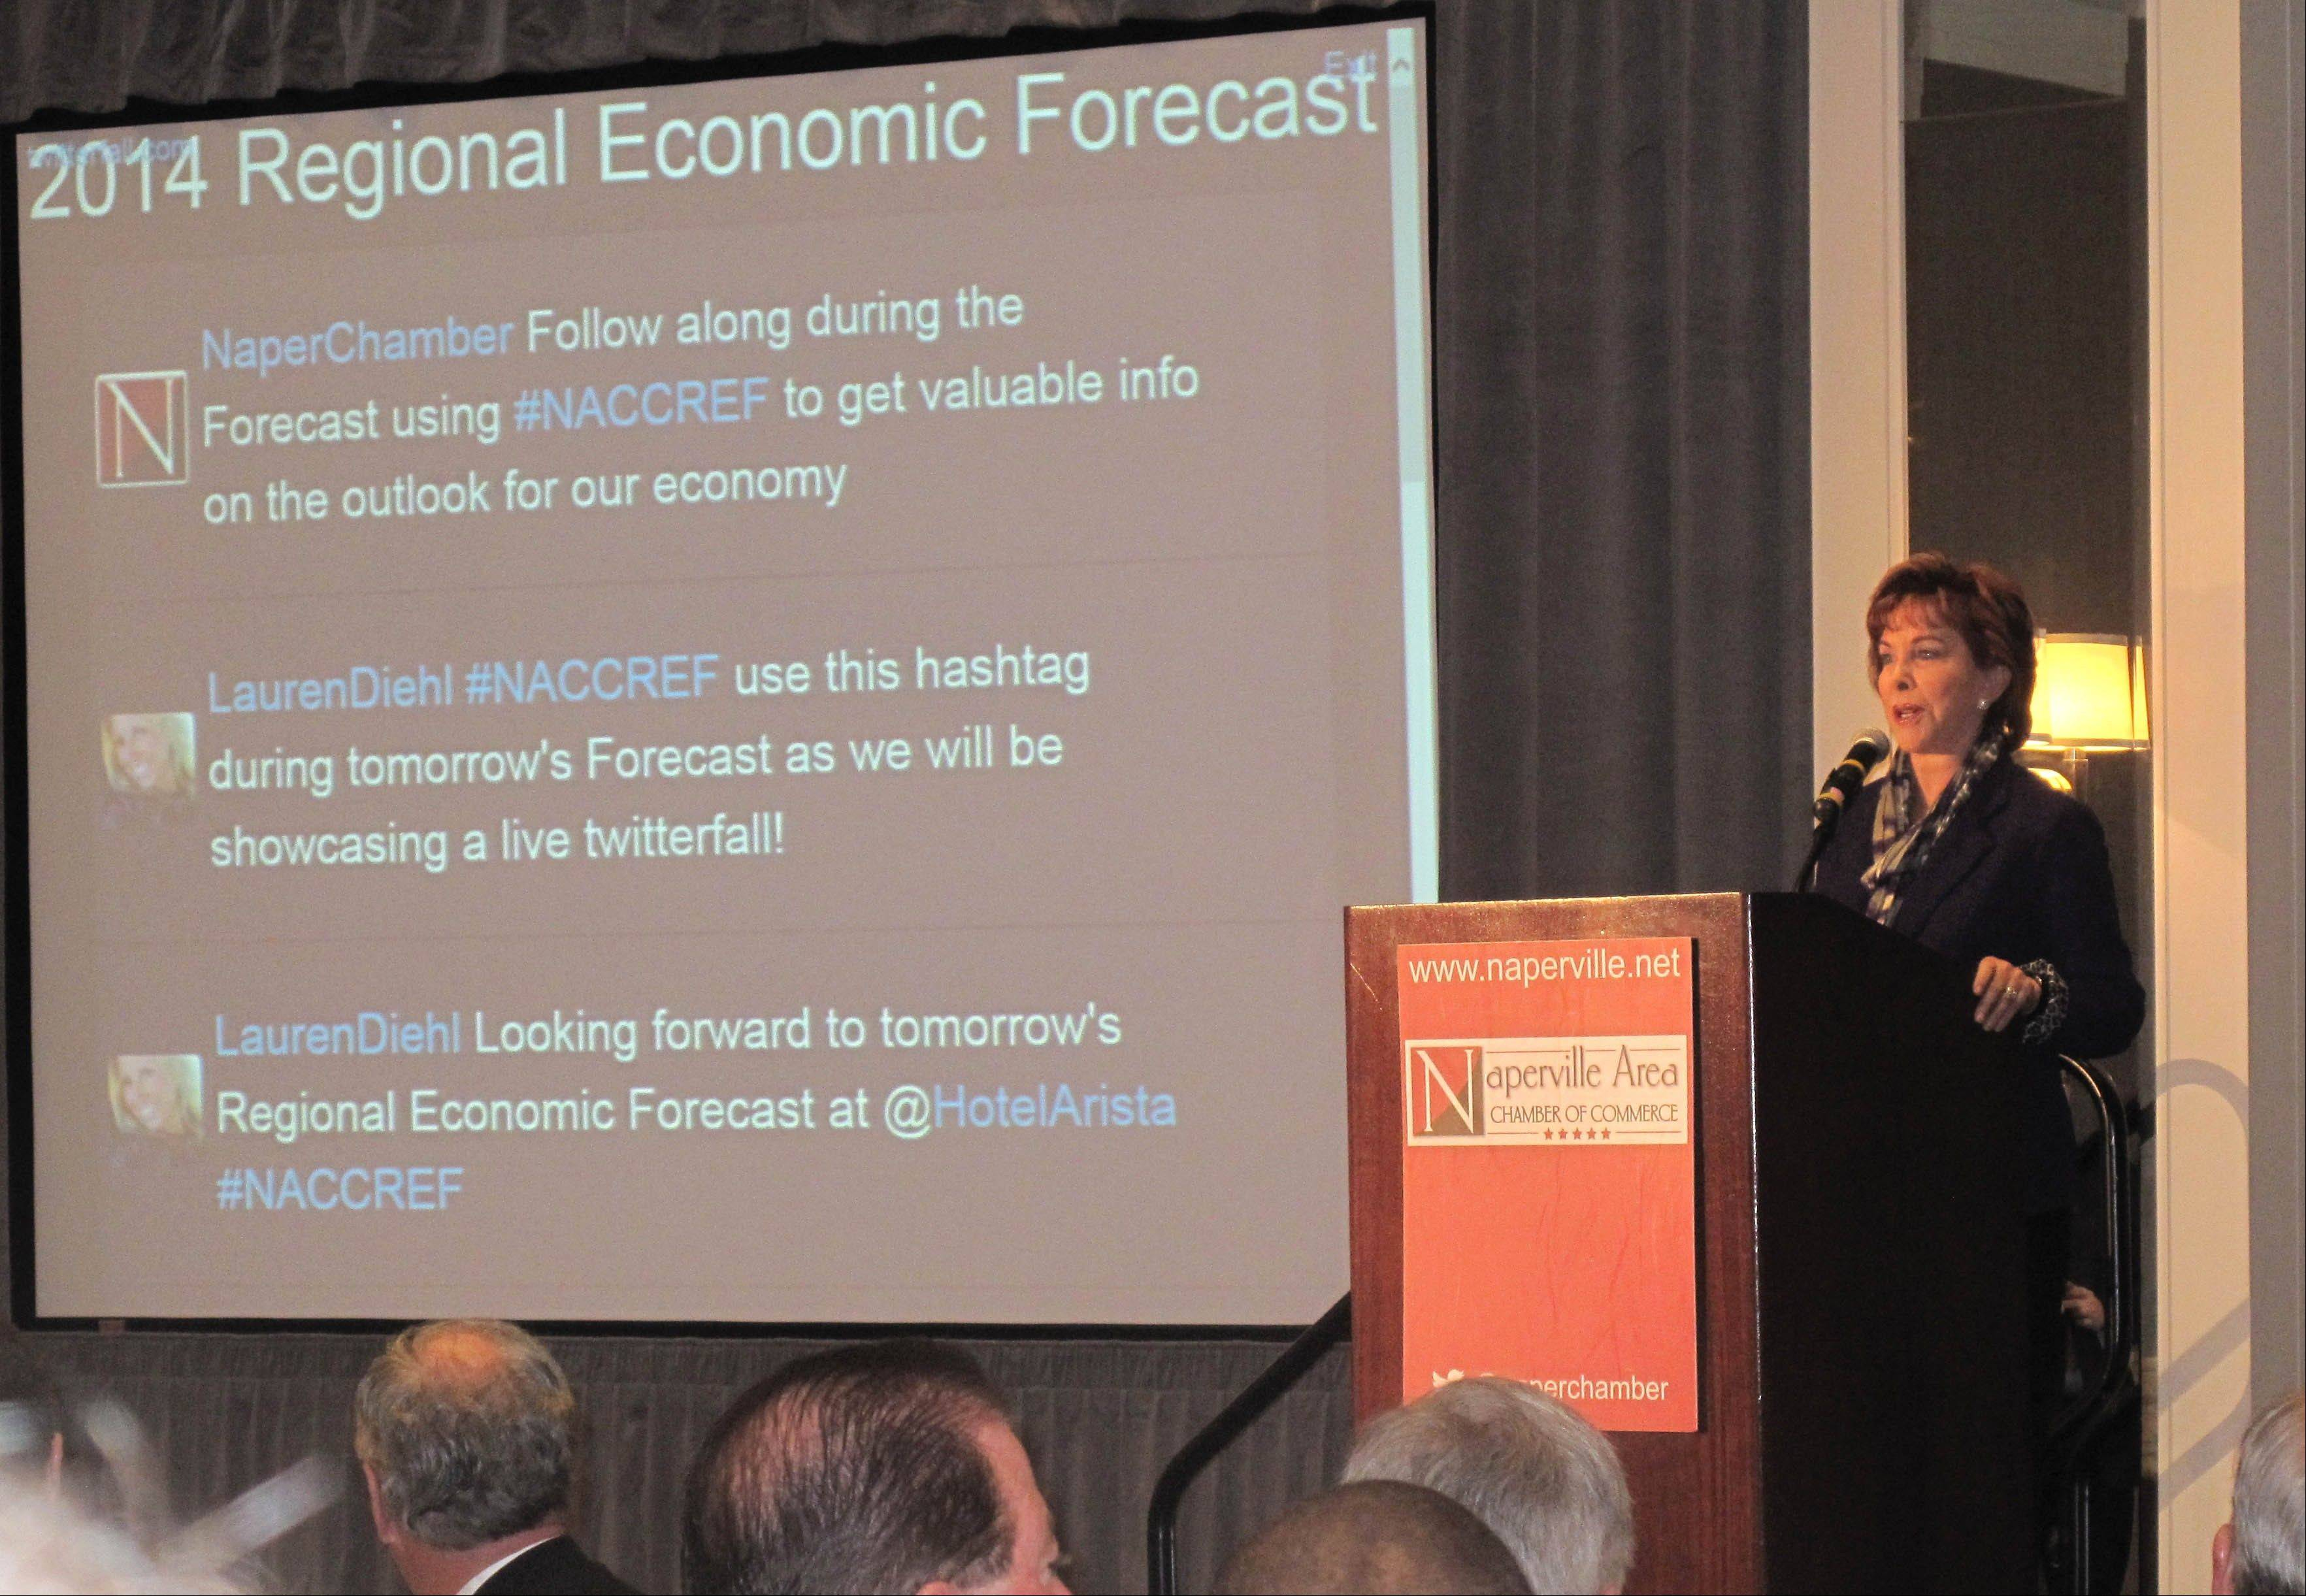 Terry Savage, personal finance expert and moderator of the Naperville Area Chamber of Commerce's annual Regional Economic Forecast, announces Thursday's panel before an audience of business leaders at Hotel Arista.